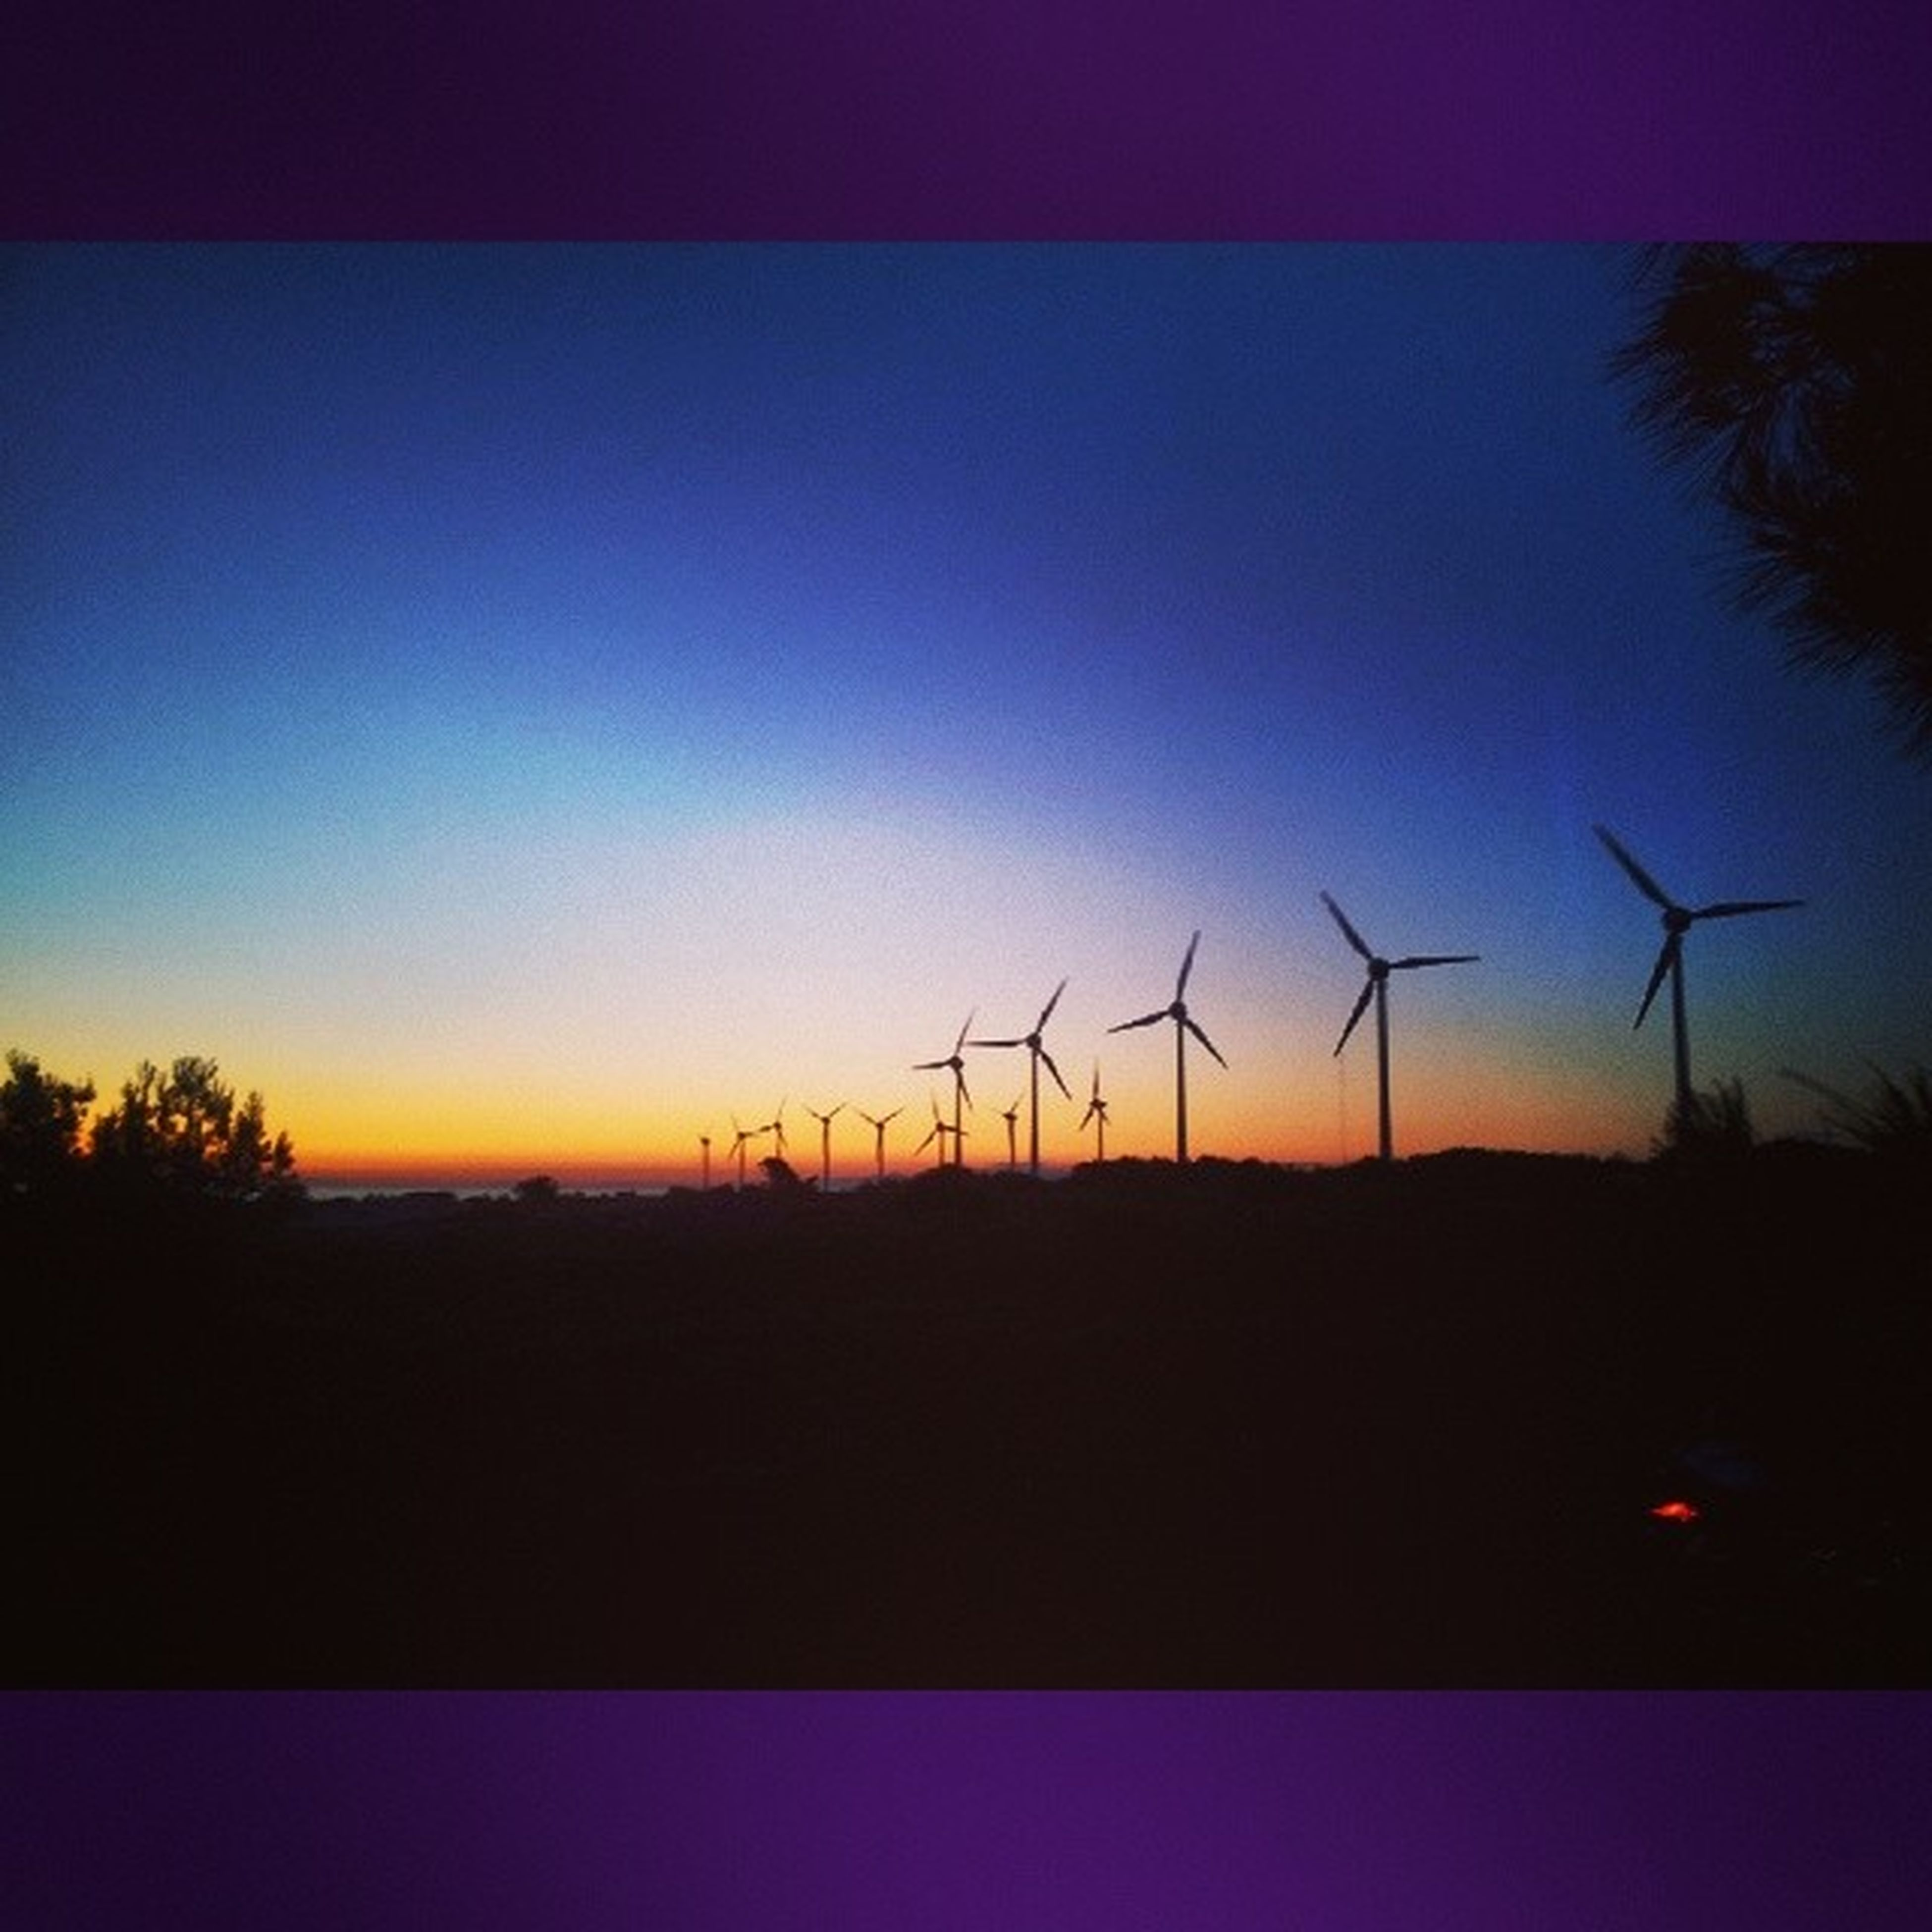 wind turbine, wind power, alternative energy, fuel and power generation, environmental conservation, windmill, renewable energy, sunset, landscape, silhouette, field, clear sky, technology, tranquil scene, copy space, tranquility, rural scene, nature, scenics, sky